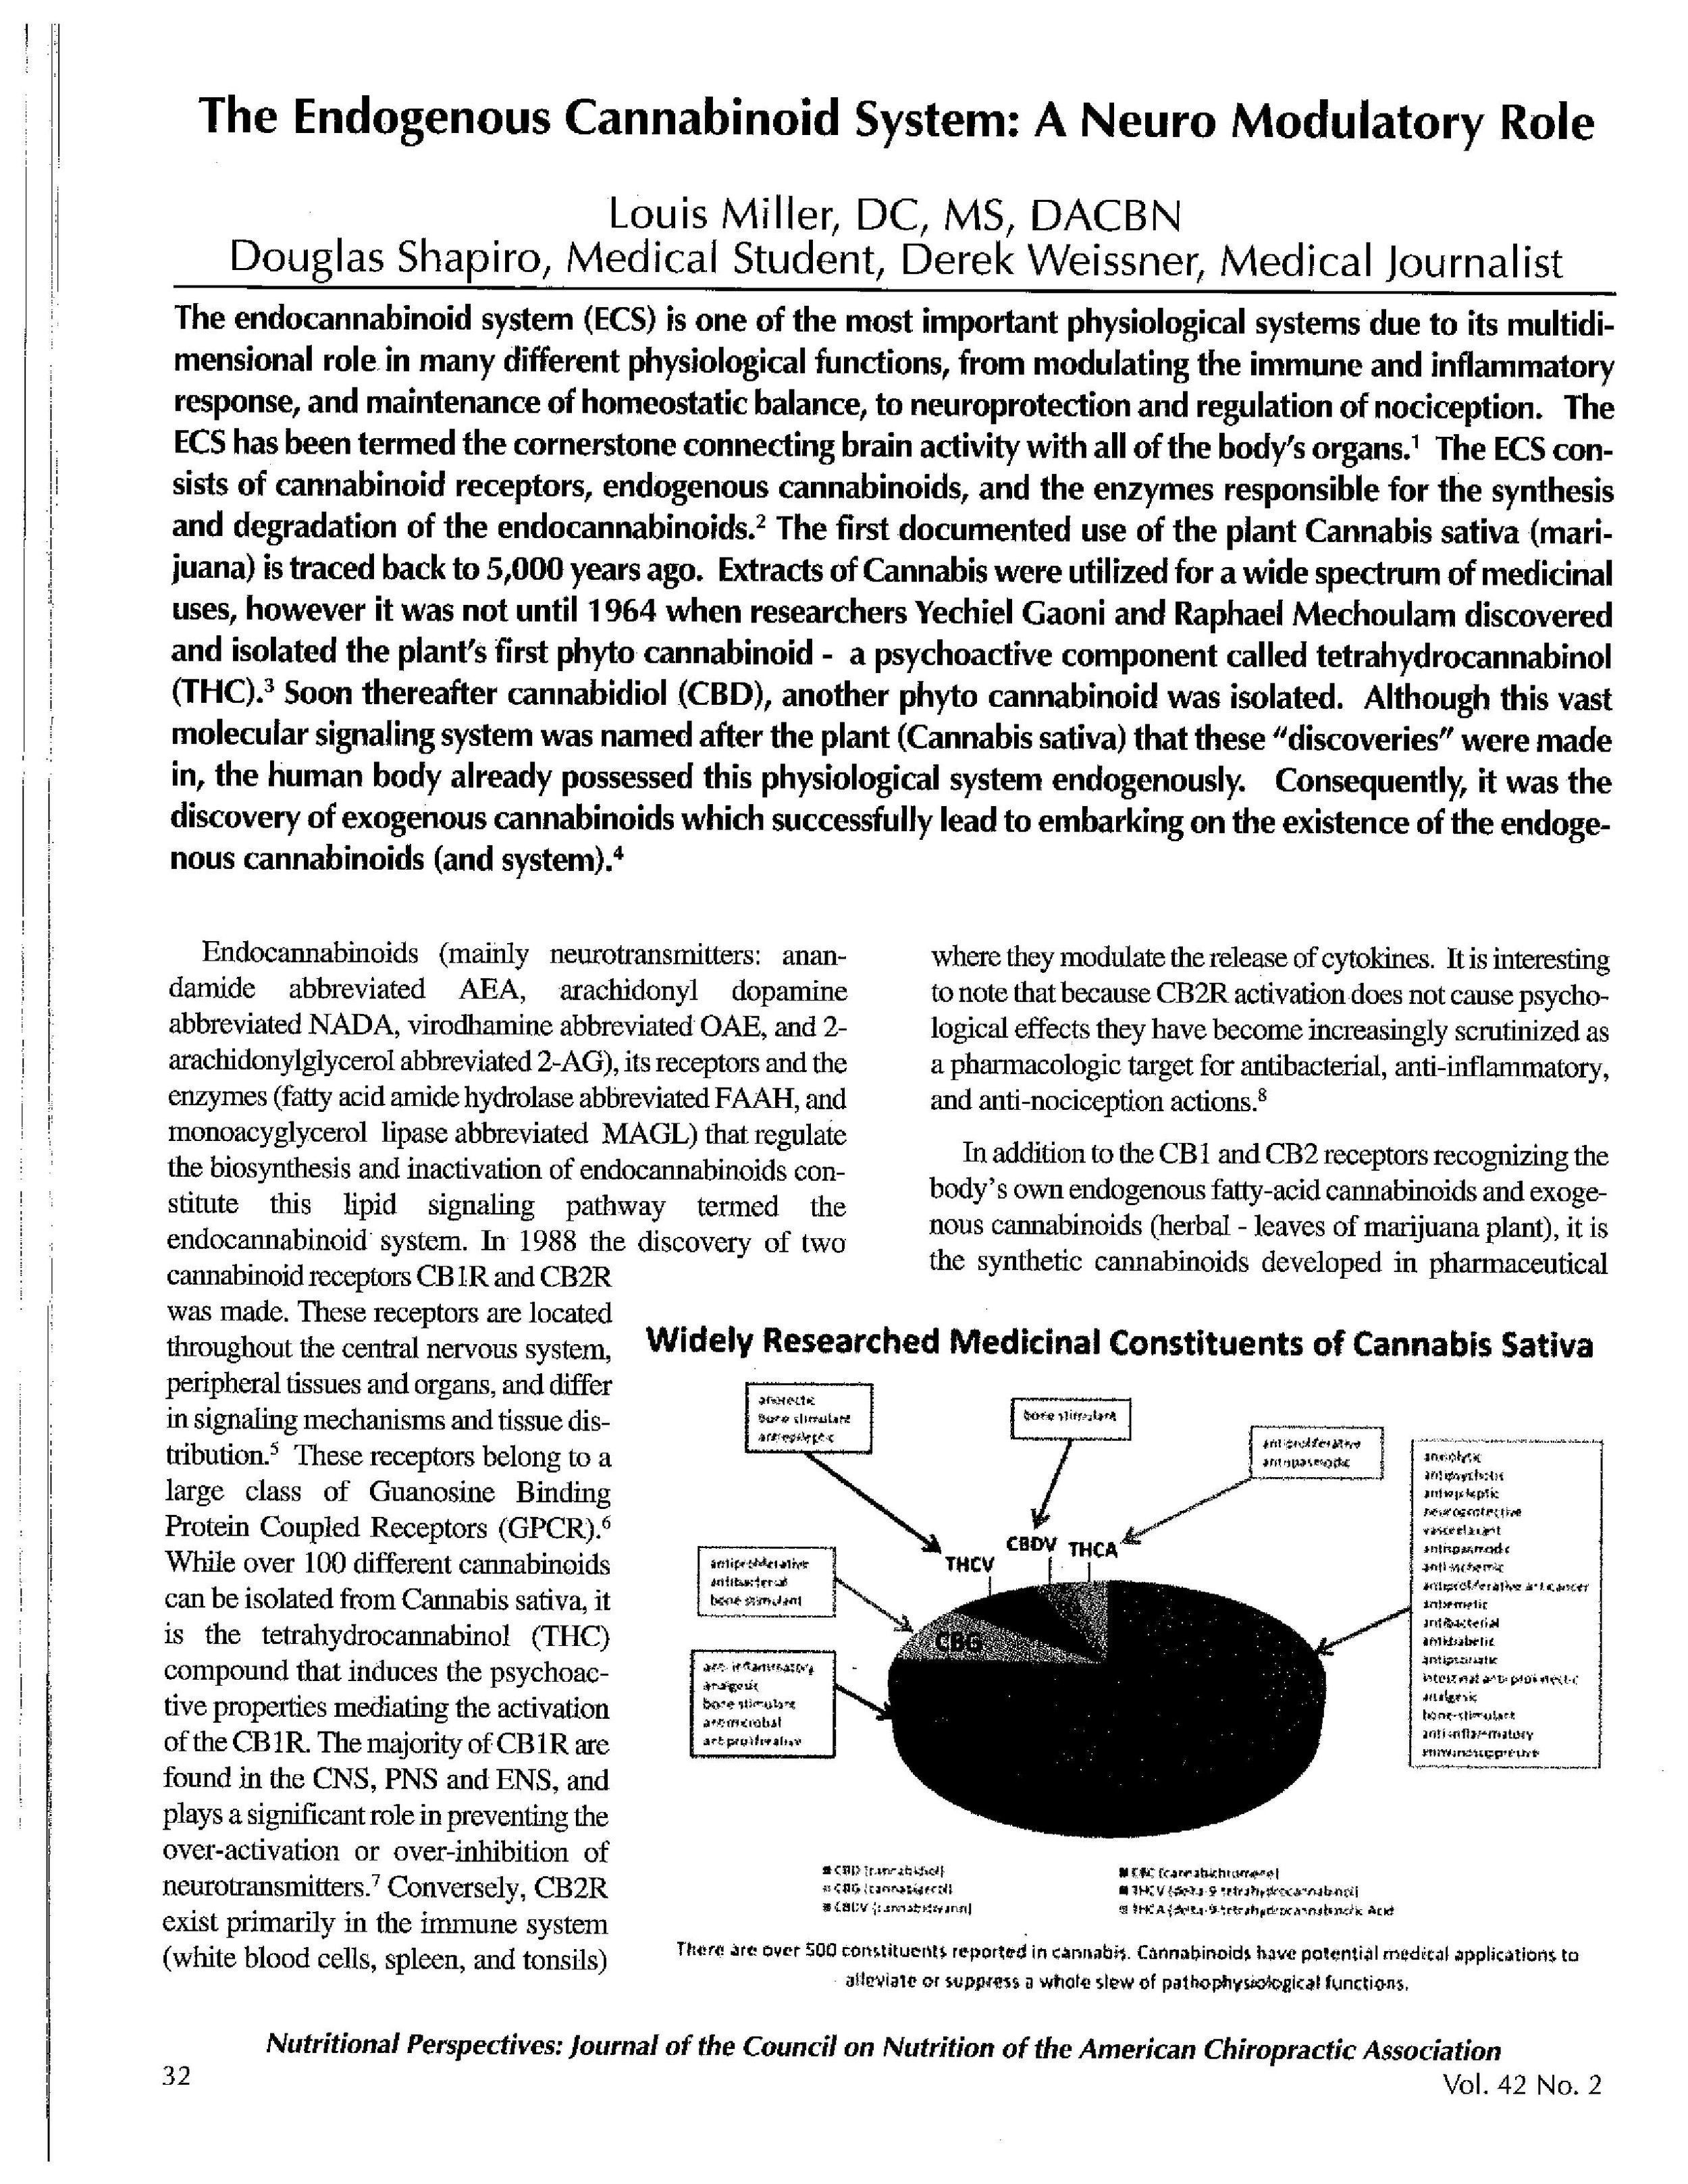 cannabinoid article-page-001.jpg